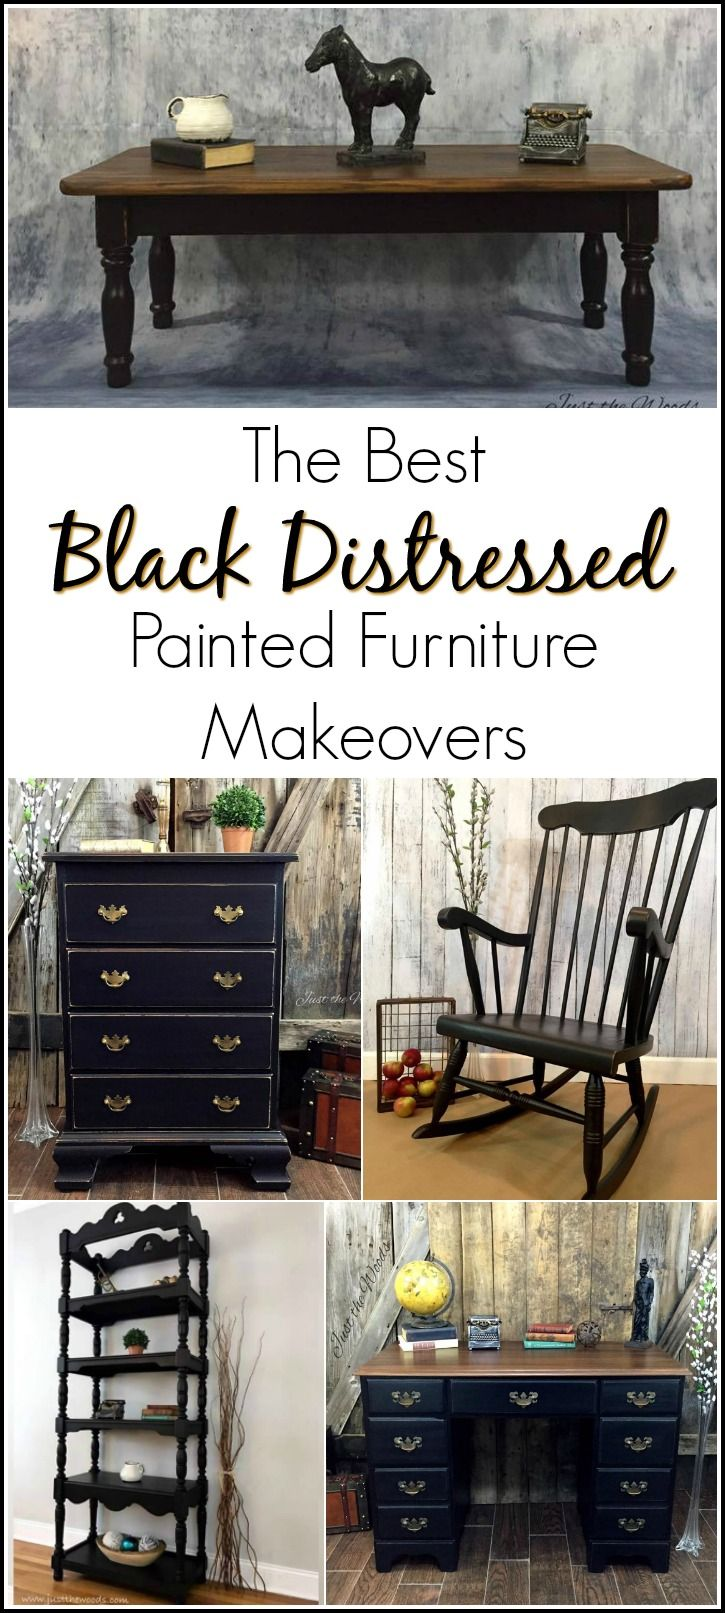 If you love painted furniture, but find white to be a bore, how about a collection of the best black distressed painted furniture